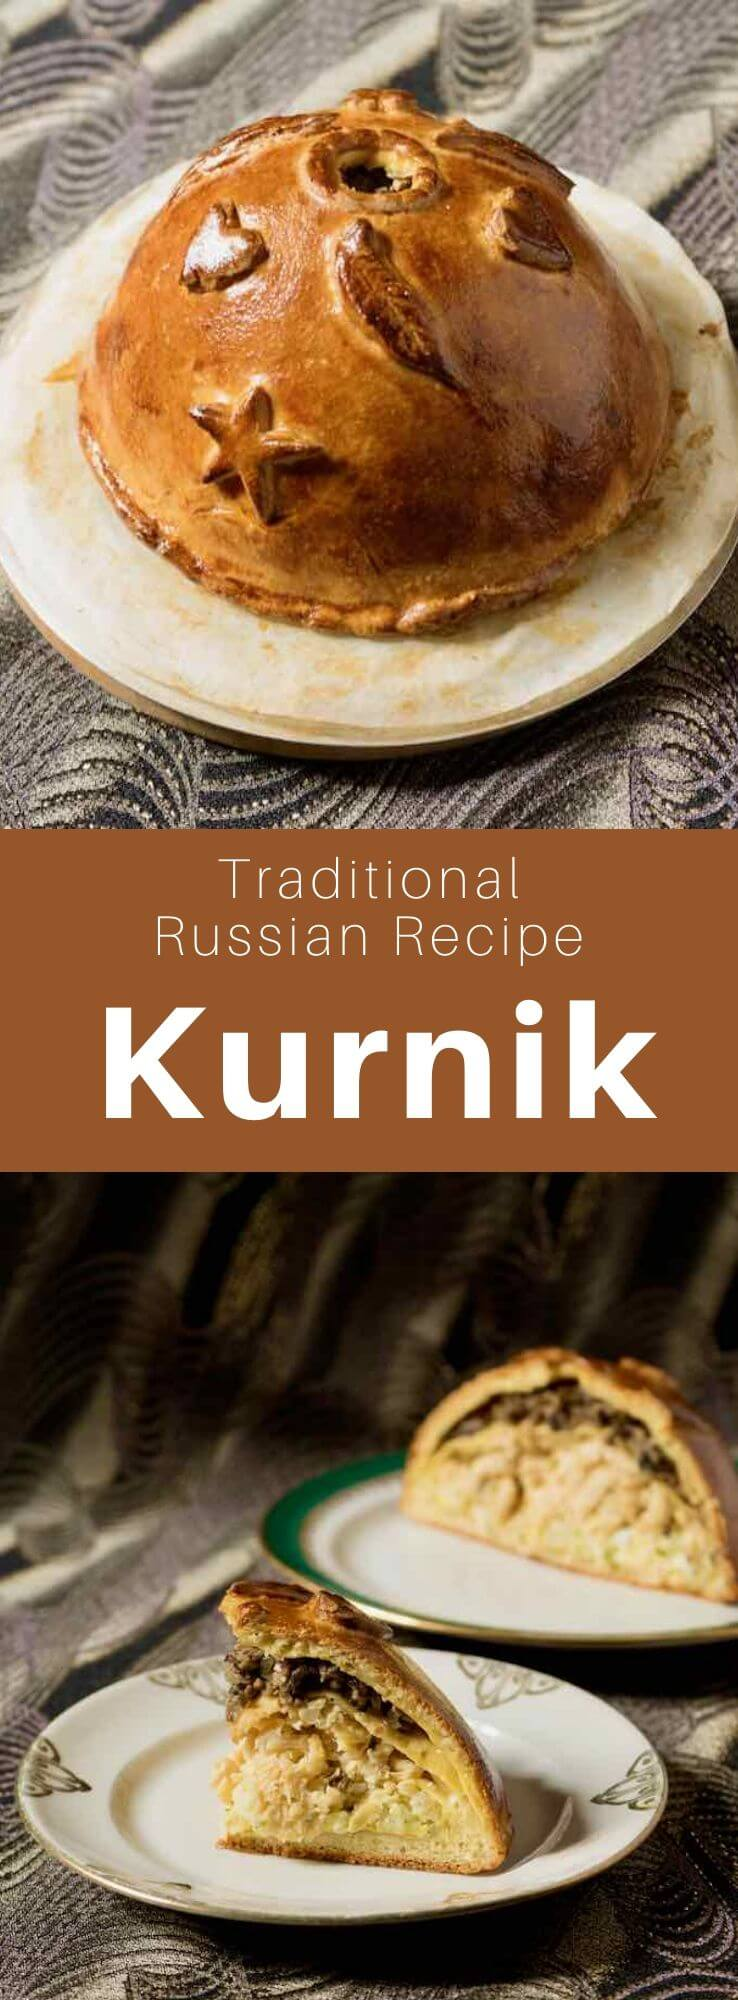 Kurnik (курник) is a traditional Russian chicken pie served at weddings or other festive events like the Feast of the Trinity. #Russia #Russian #RussianRecipe #RussianFood #WorldCuisine #196flavors